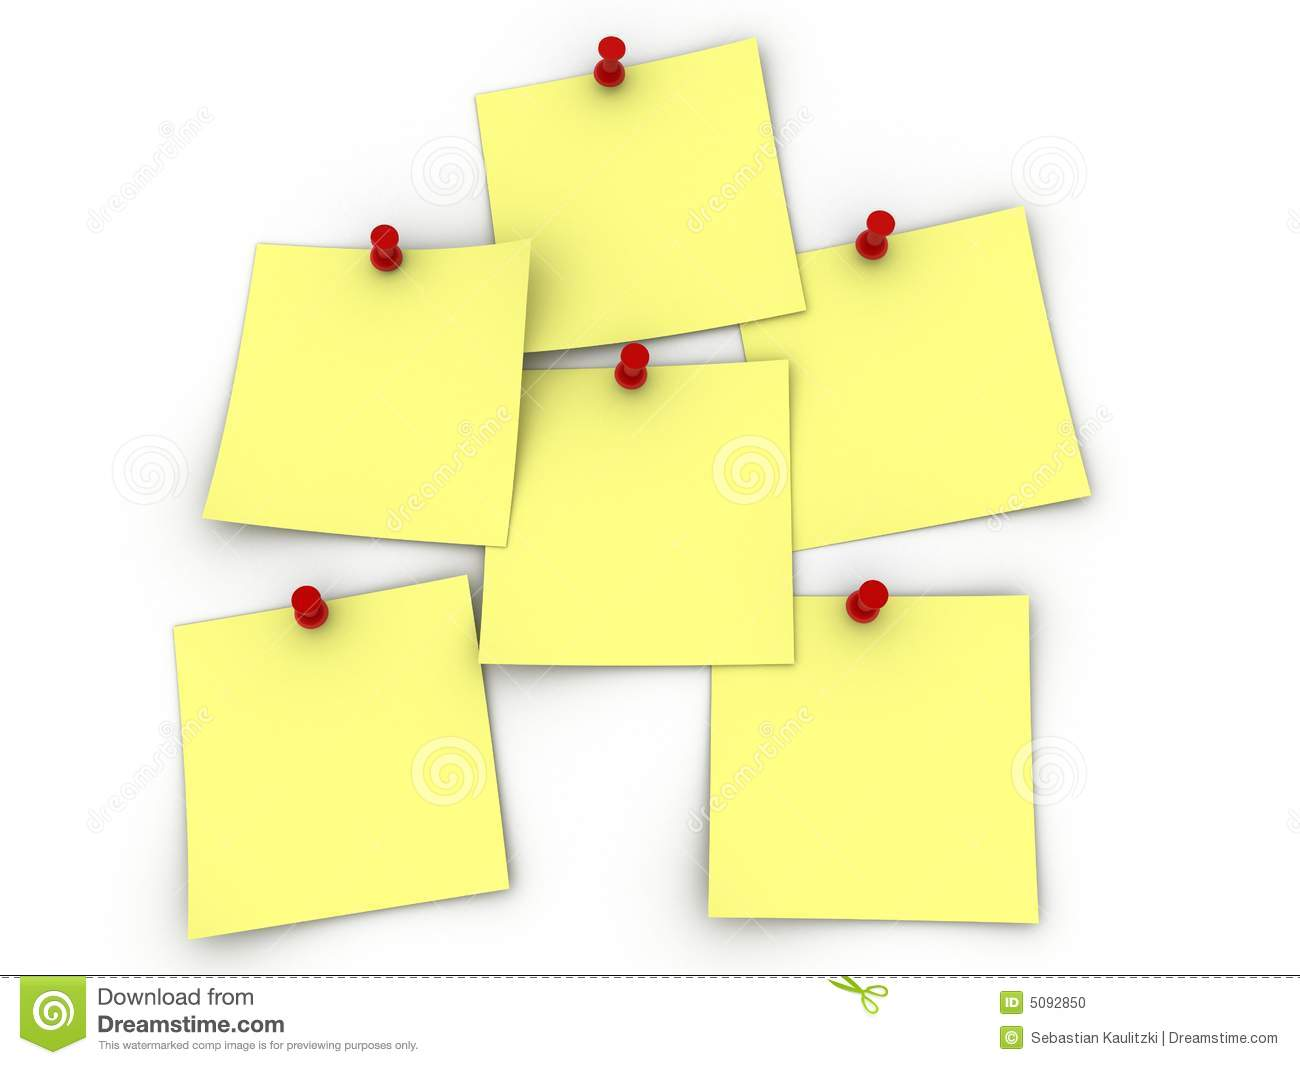 3d rendered illustration of yellow note papers with push pins.